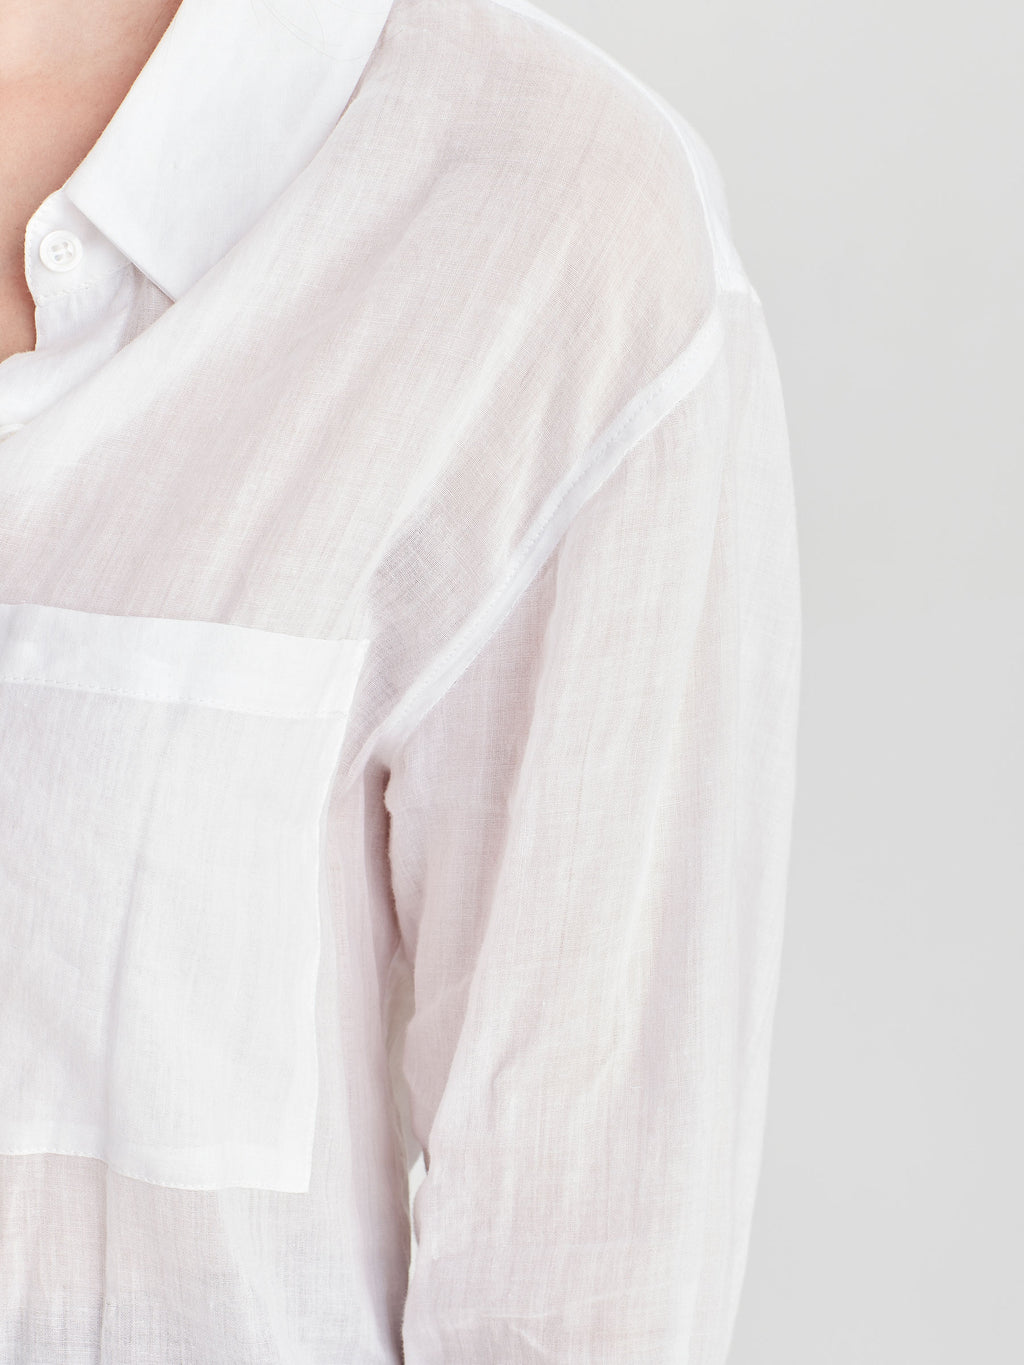 Cohen Shirt (Sheer Cotton) White